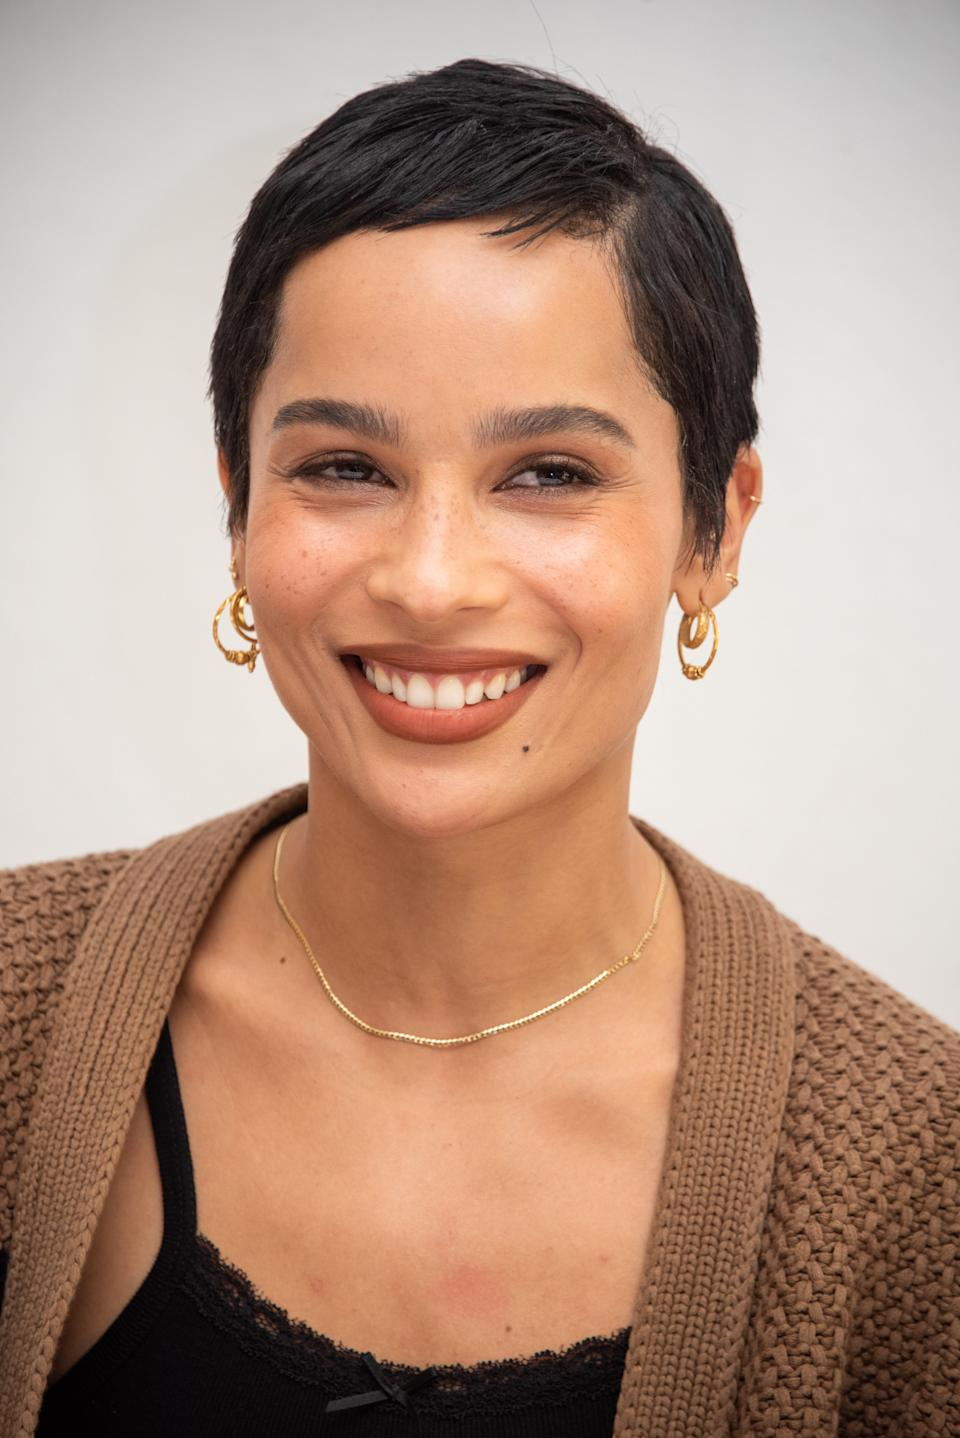 Zoë Kravitz's cropped pixie looks classic and cool at the same time thanks to the hint of bangs.